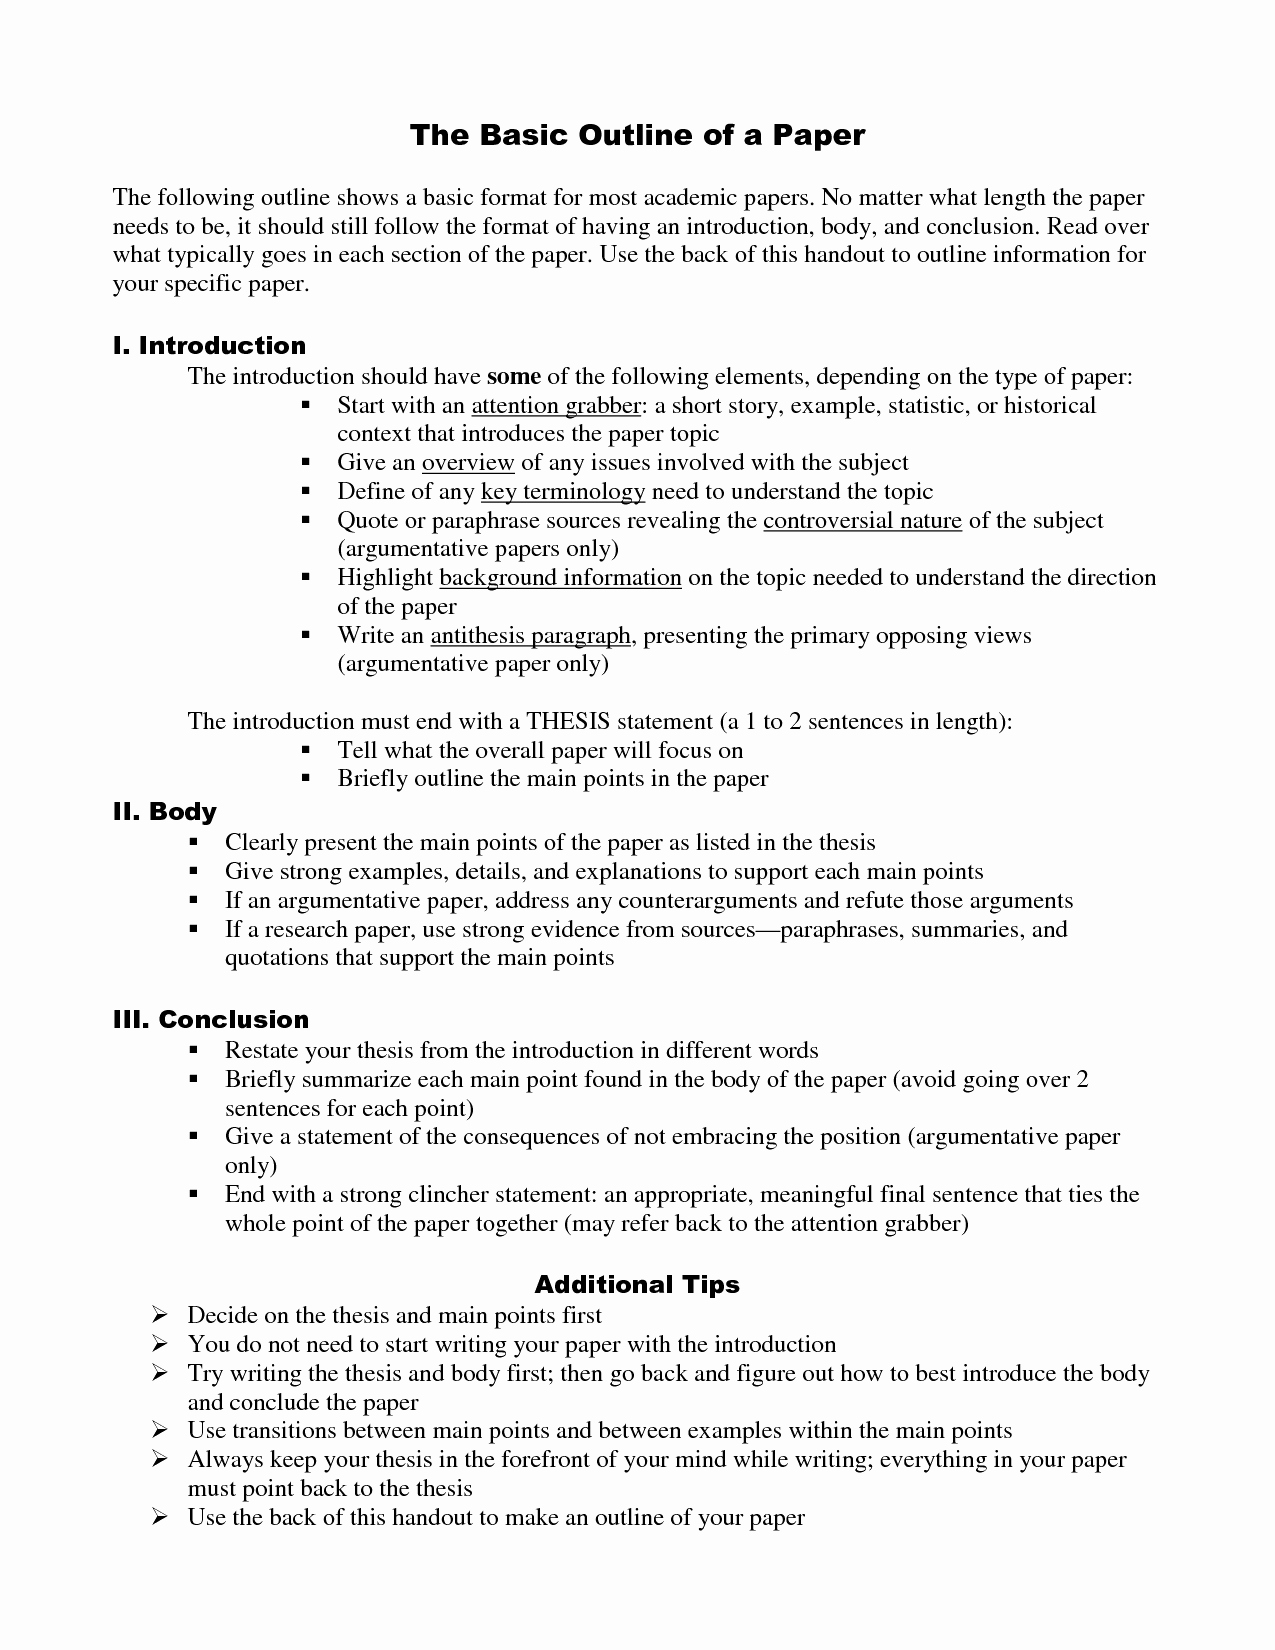 018 Inspirational Essays Character Analysis Essay Template Fresh The Yellow Wallpaper English Of Breathtaking About Life And Struggles For Youth Full